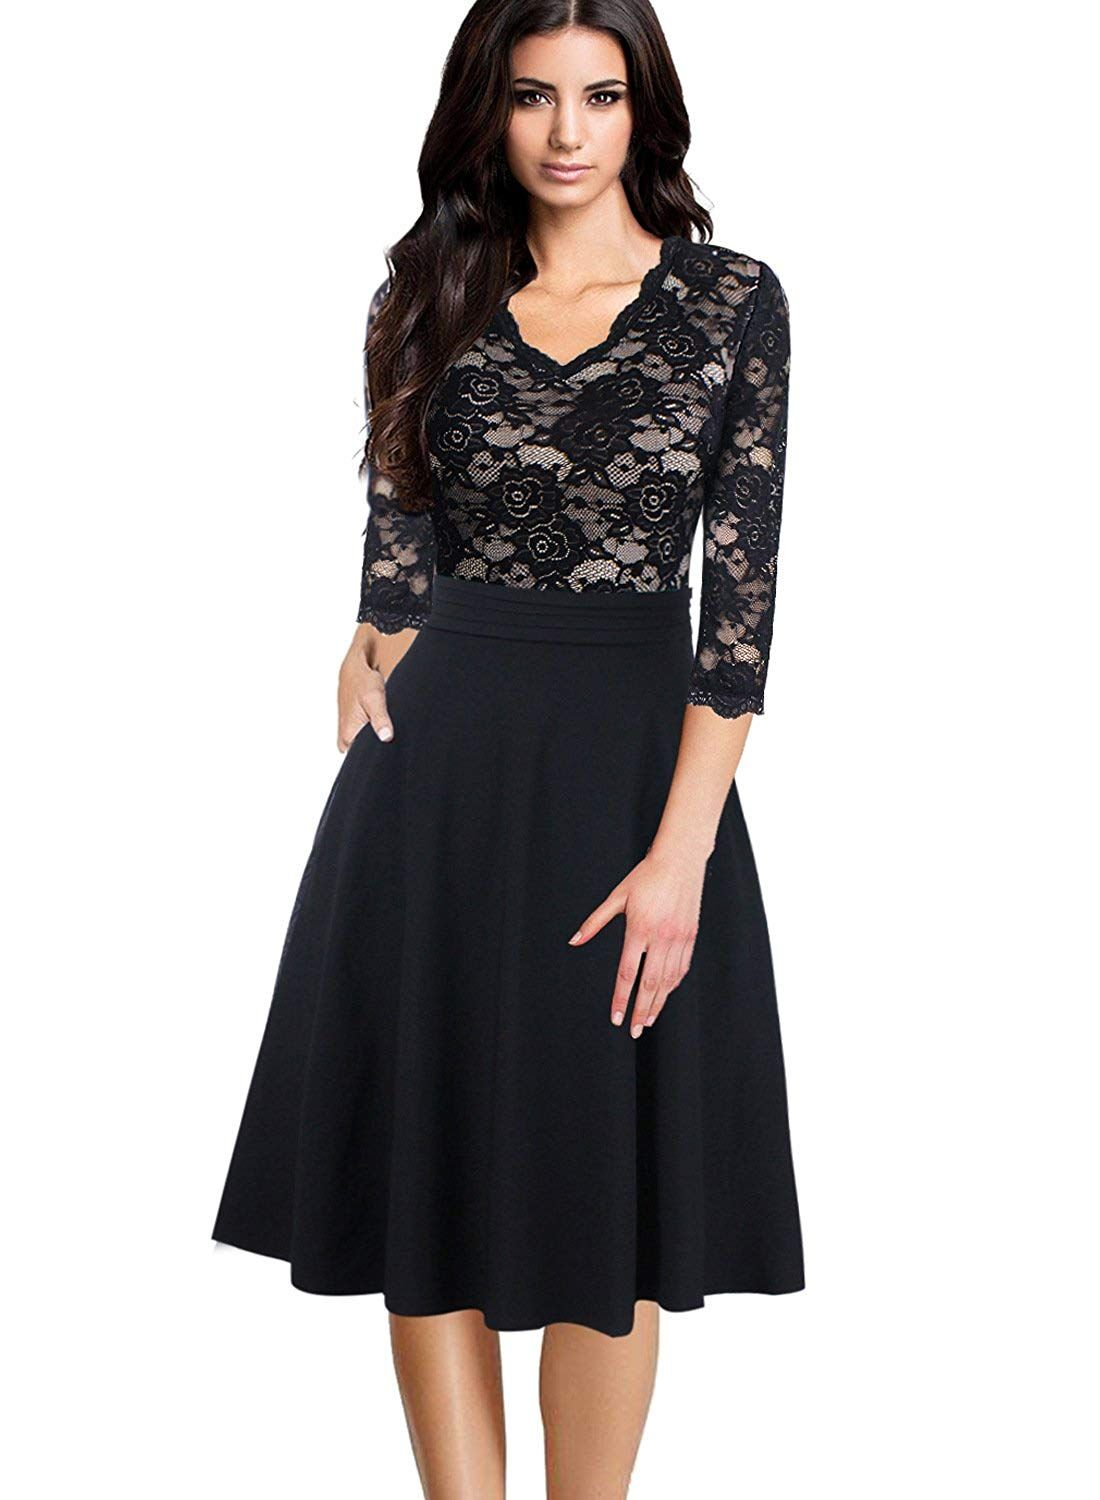 2b6ffe3c4b38 VFSHOW Women V Neck Floral Lace Patchwork Pocket Cocktail Party A-Line Dress...  More information can be located at the image url.